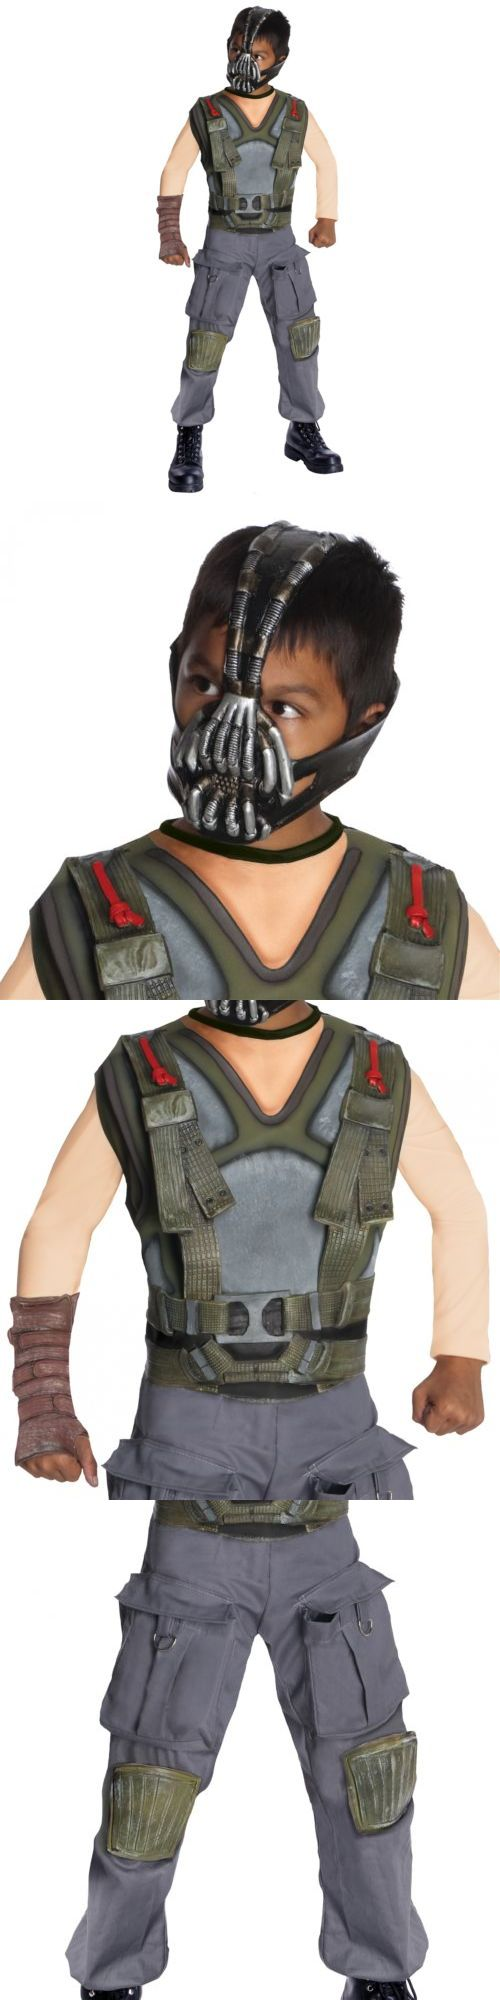 Boys 80913: Bane Costume Kids Batman Halloween Fancy Dress -> BUY IT NOW ONLY: $36.19 on eBay!